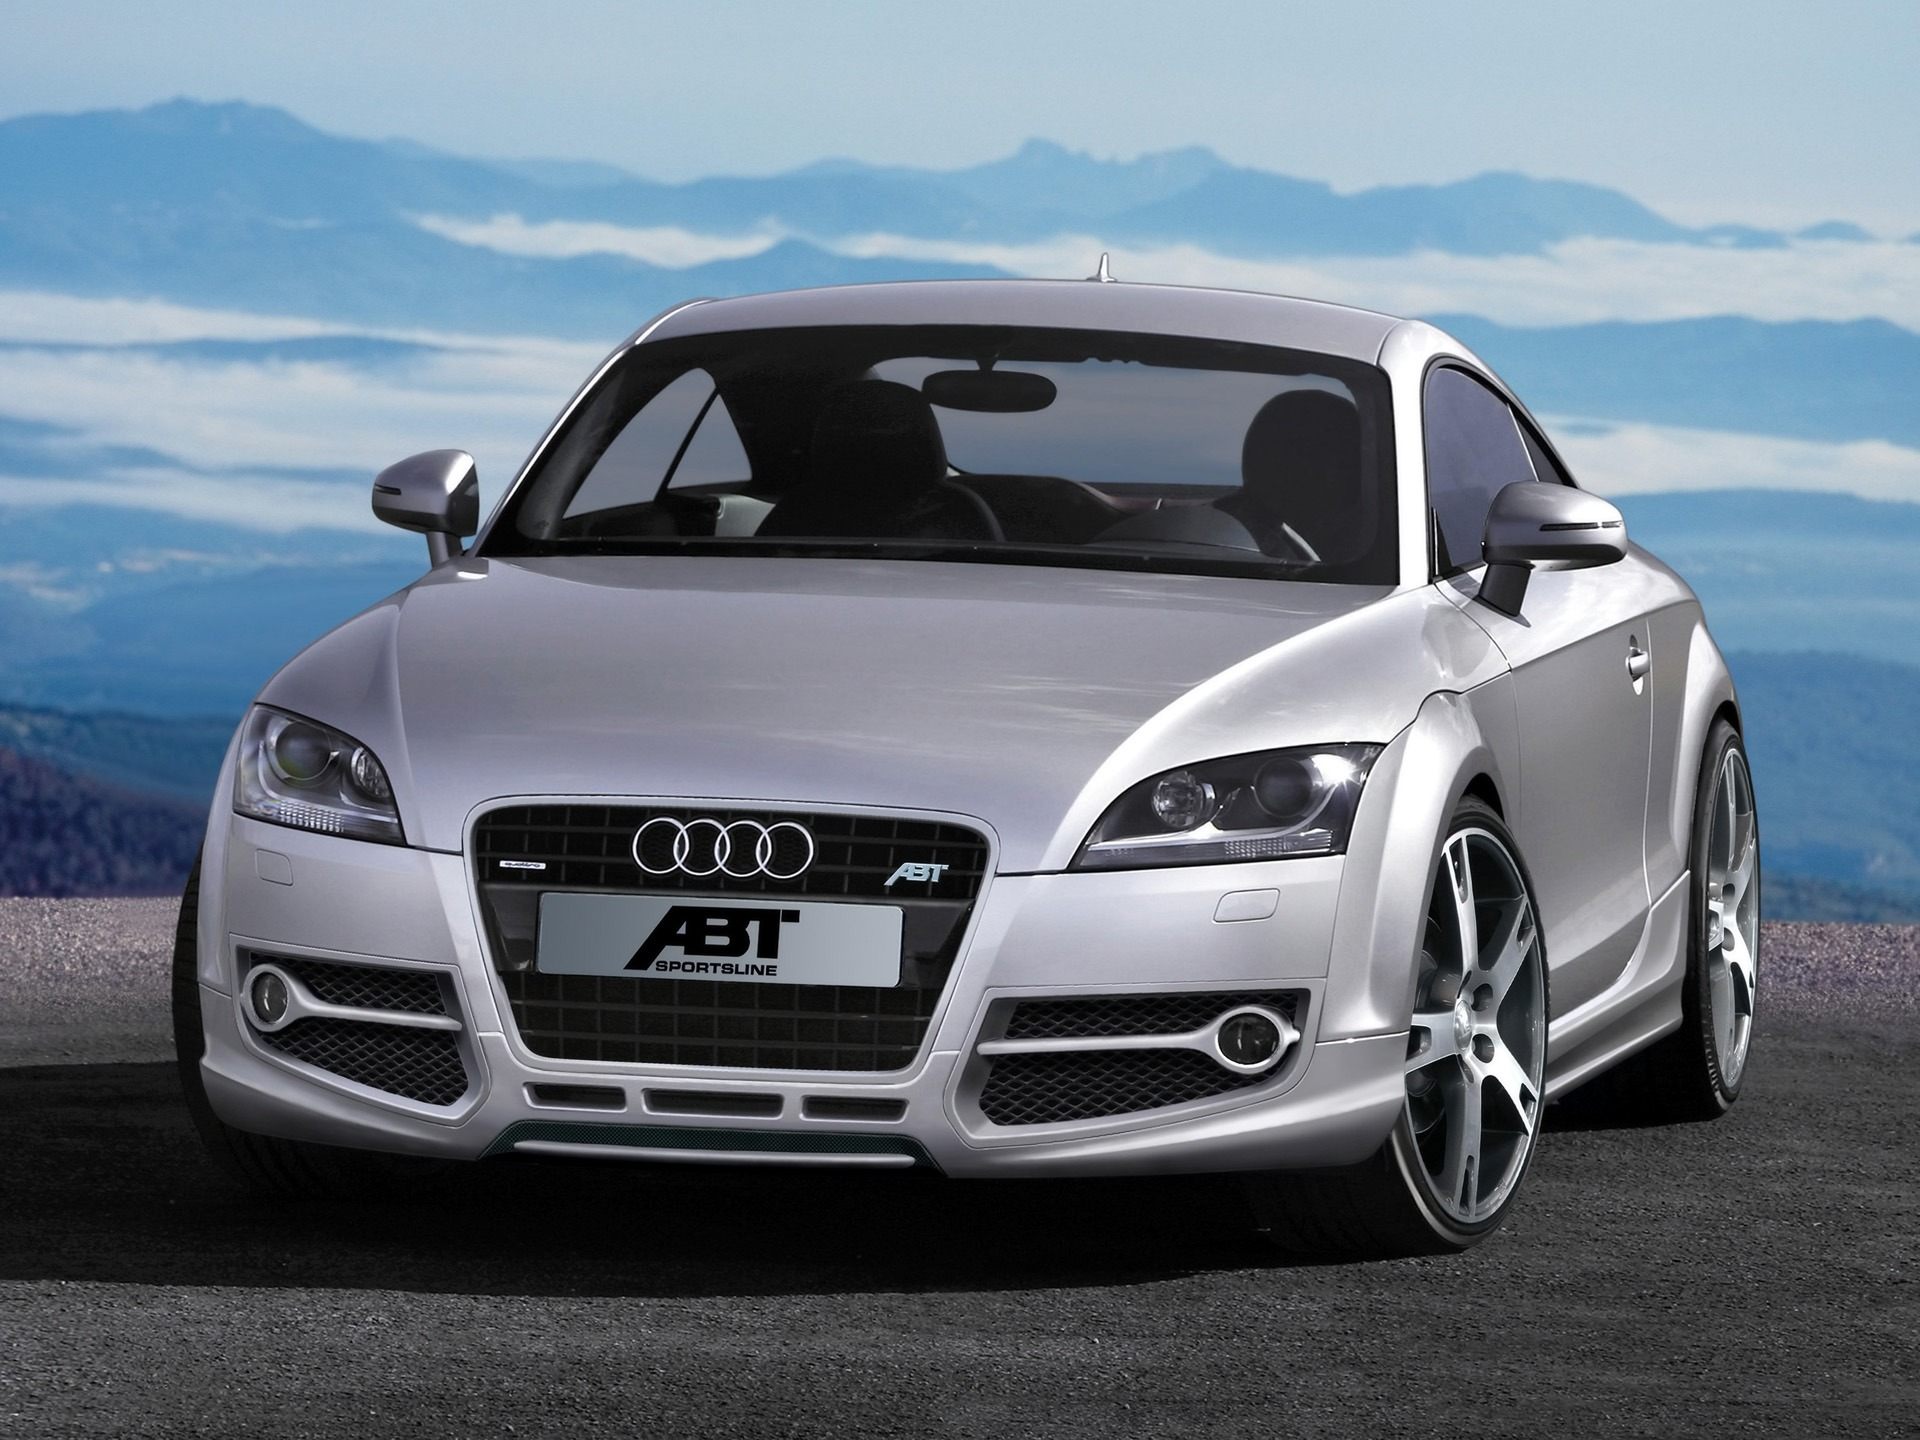 Audi Tt Wallpaper Audi Cars Wallpapers In Jpg Format For Free Download